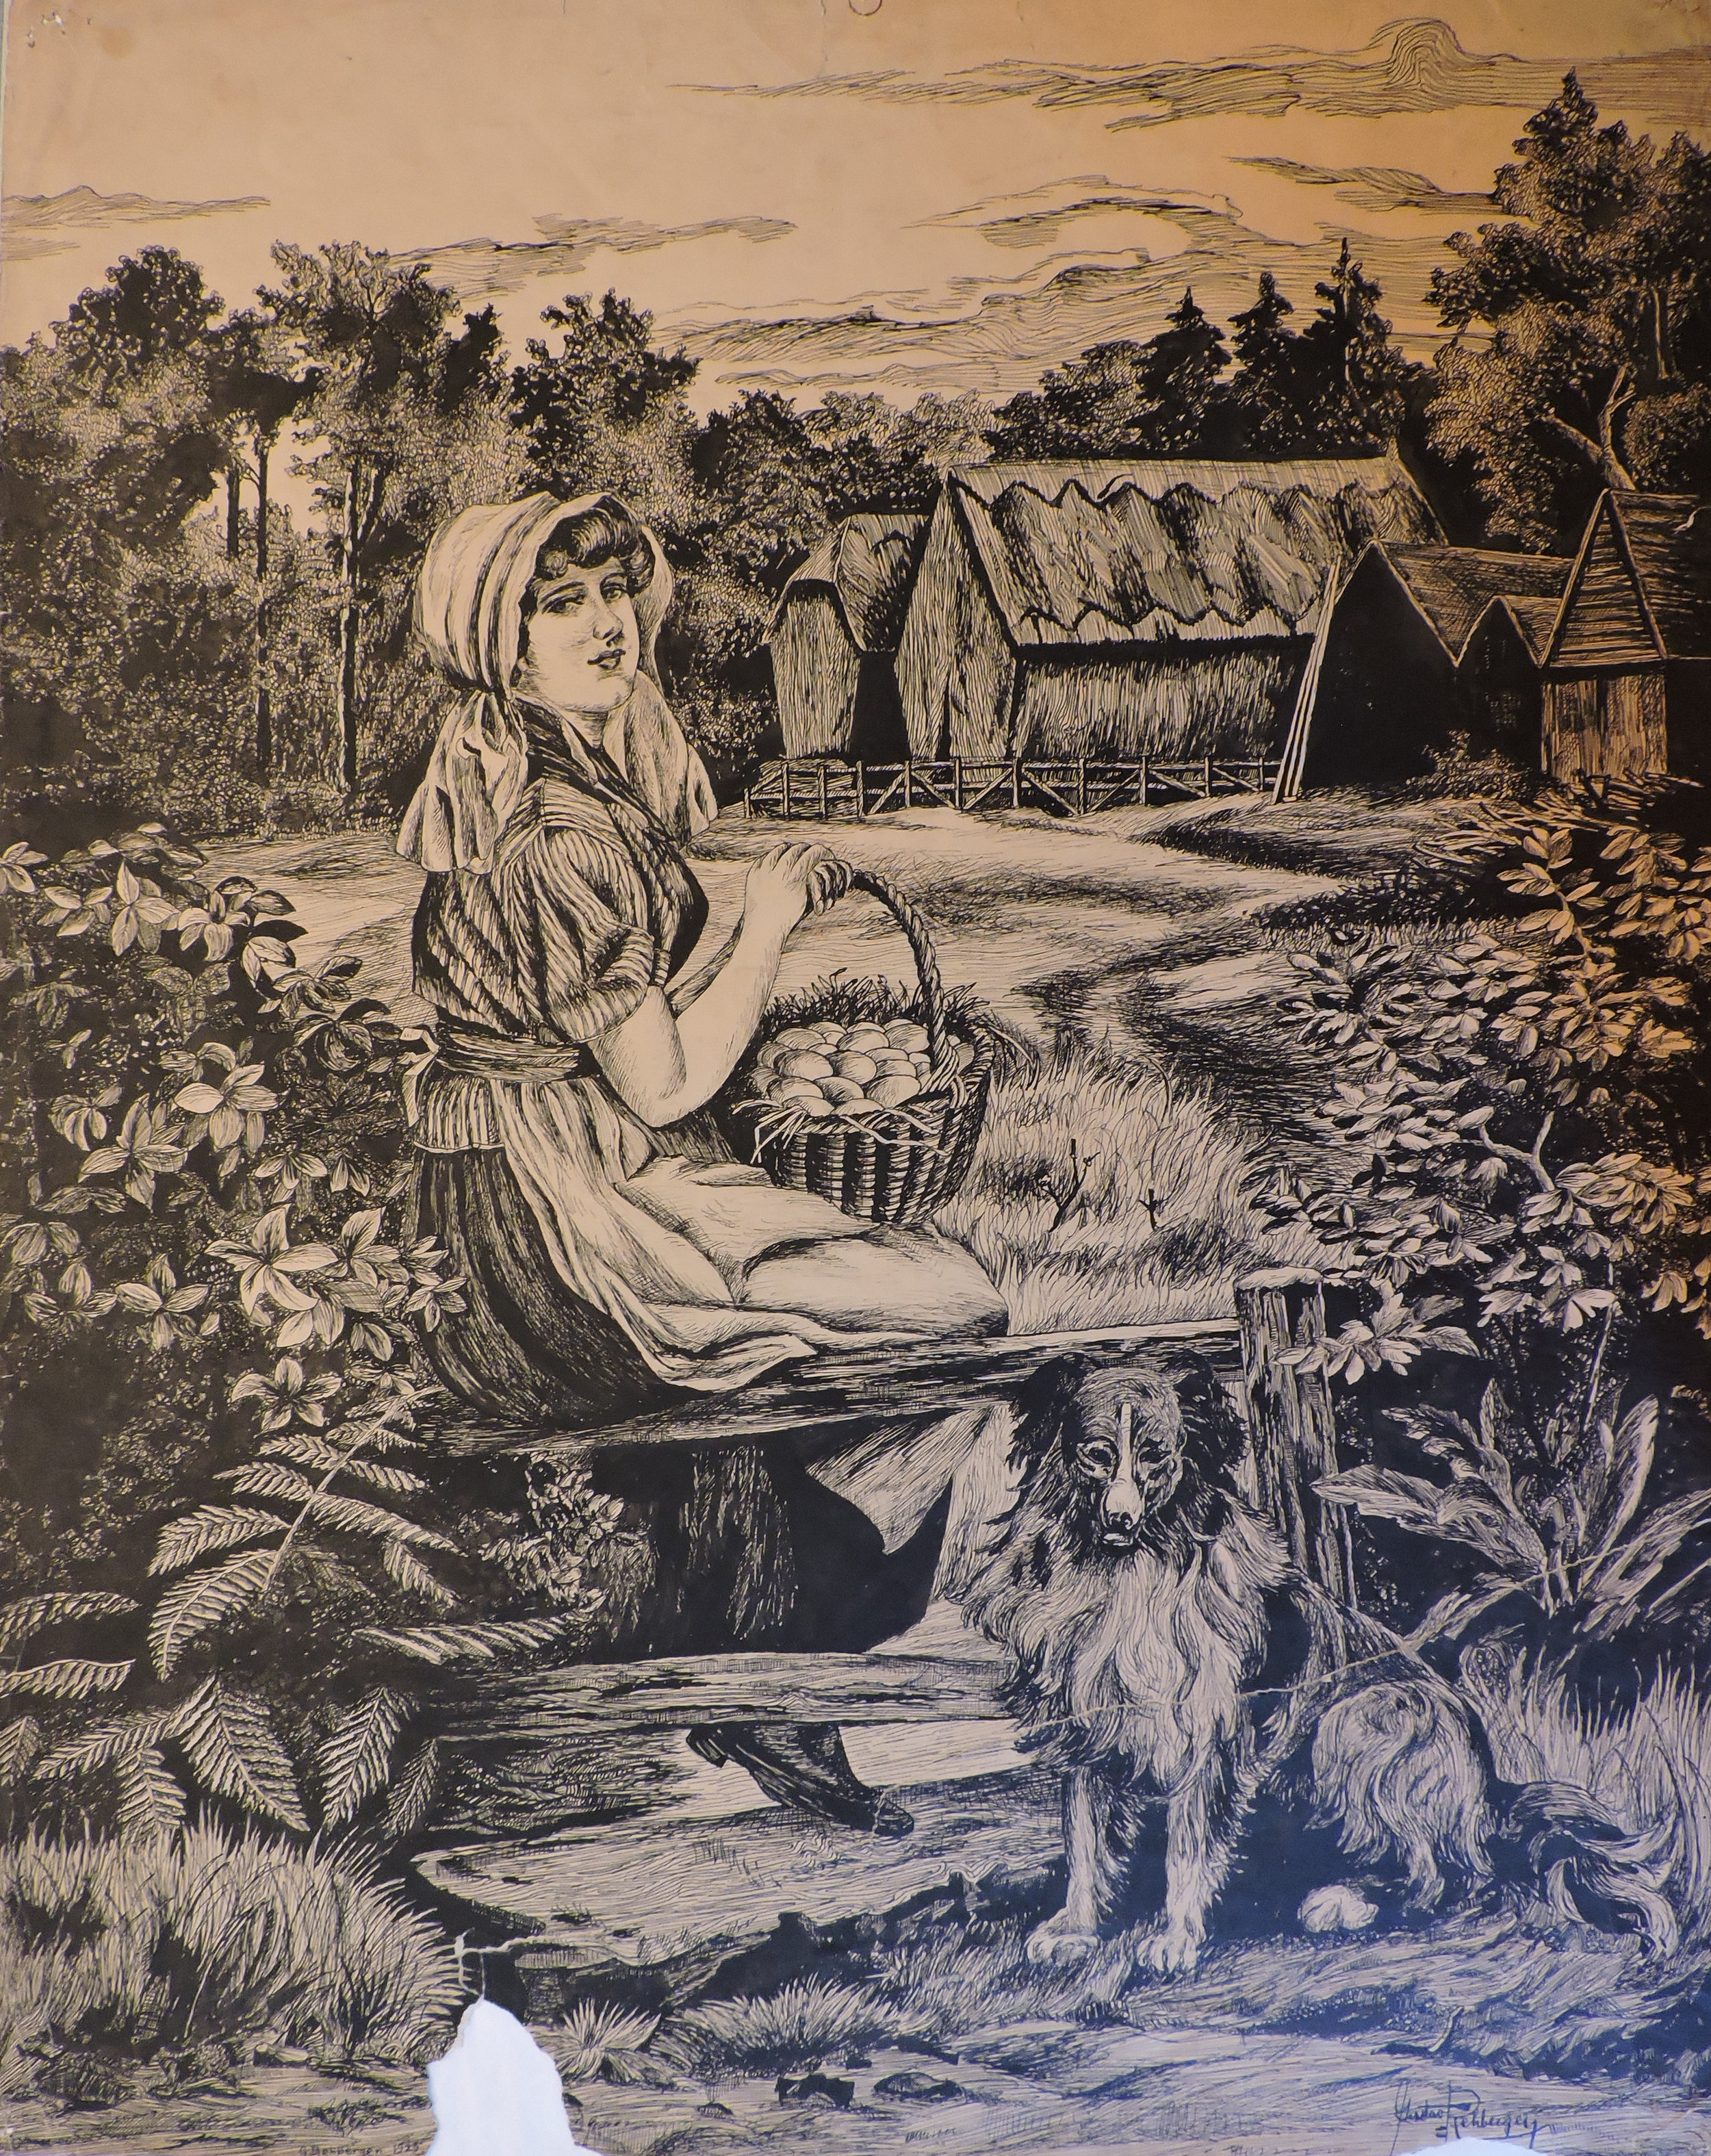 1925 - Dairymaid with Dog (Pen & Ink, 24 x 19)